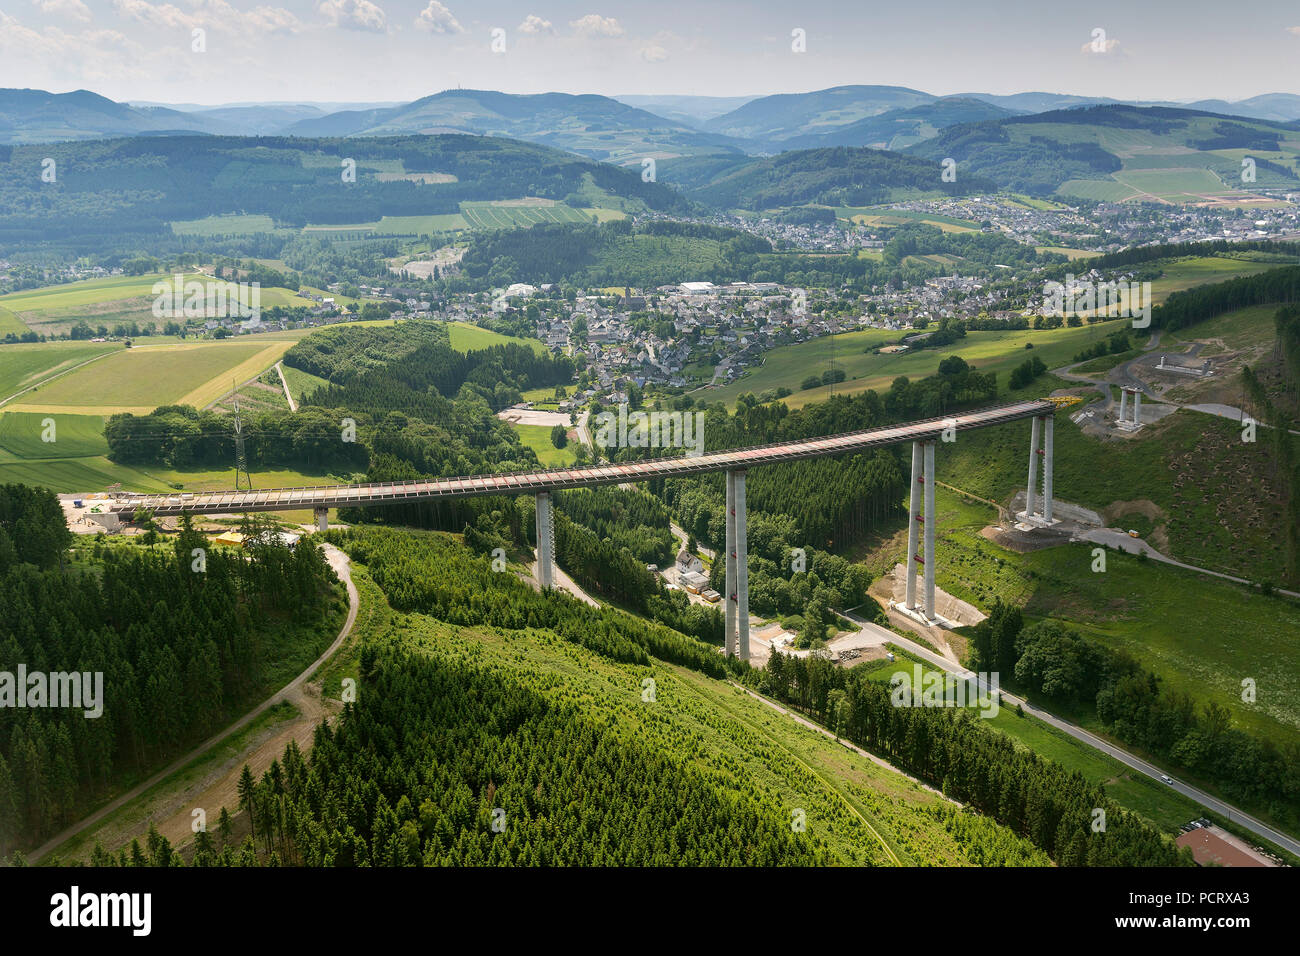 Nuttlar, highest valley bridge of North Rhine-Westphalia, construction work to the valley bridge Nuttlar, aerial view of Bestwig, Sauerland Stock Photo